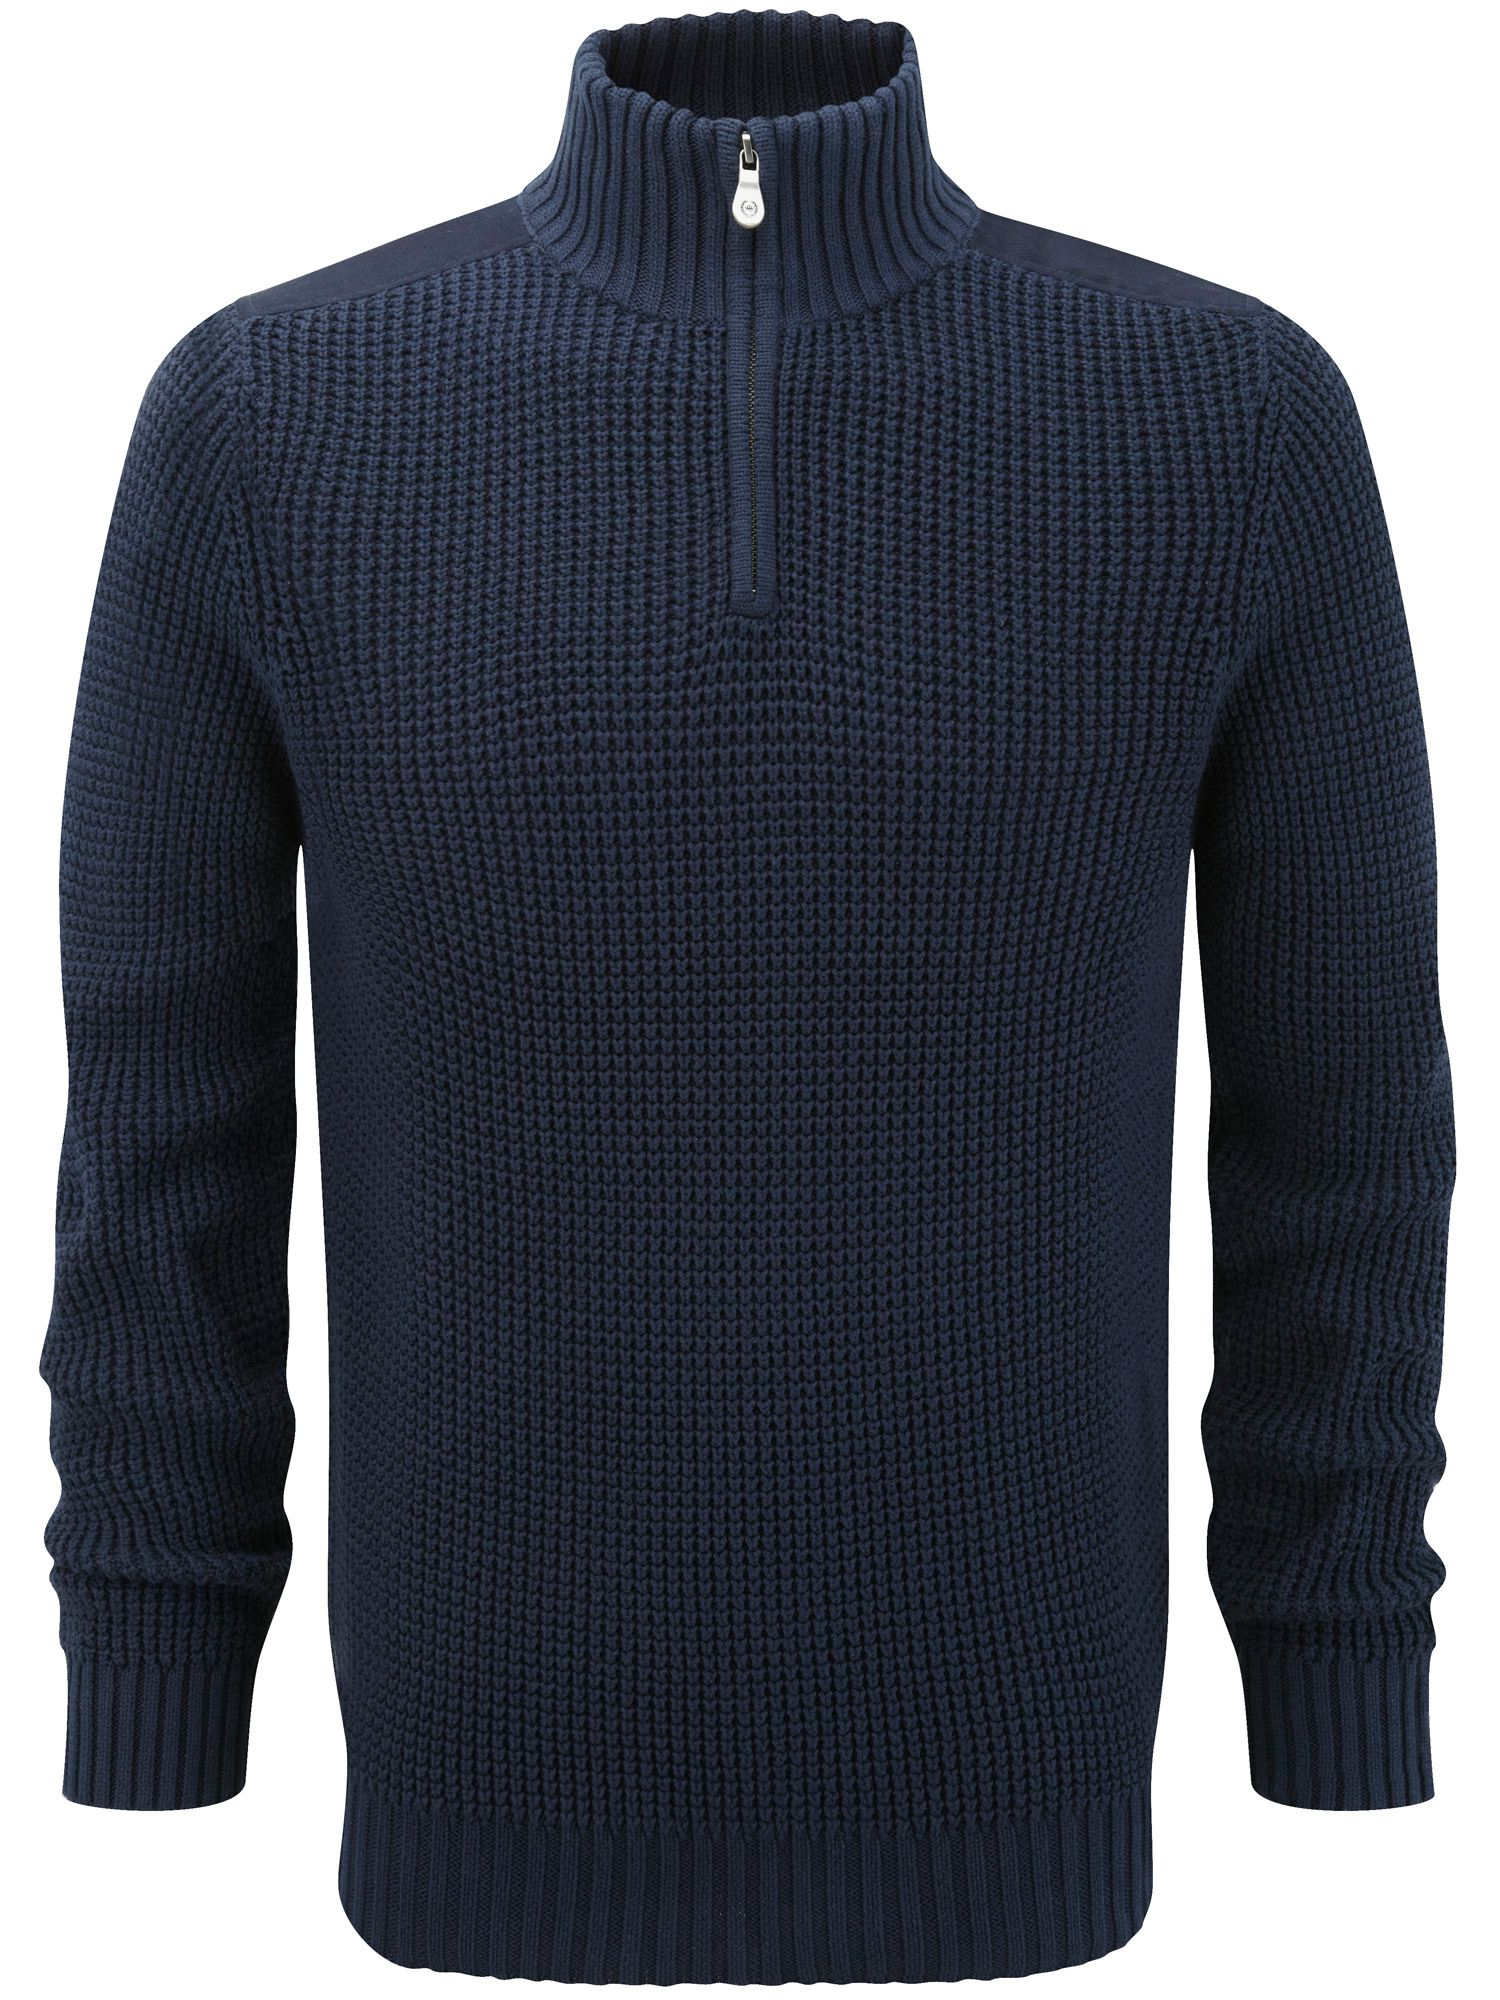 Butterton mkii half zip knit